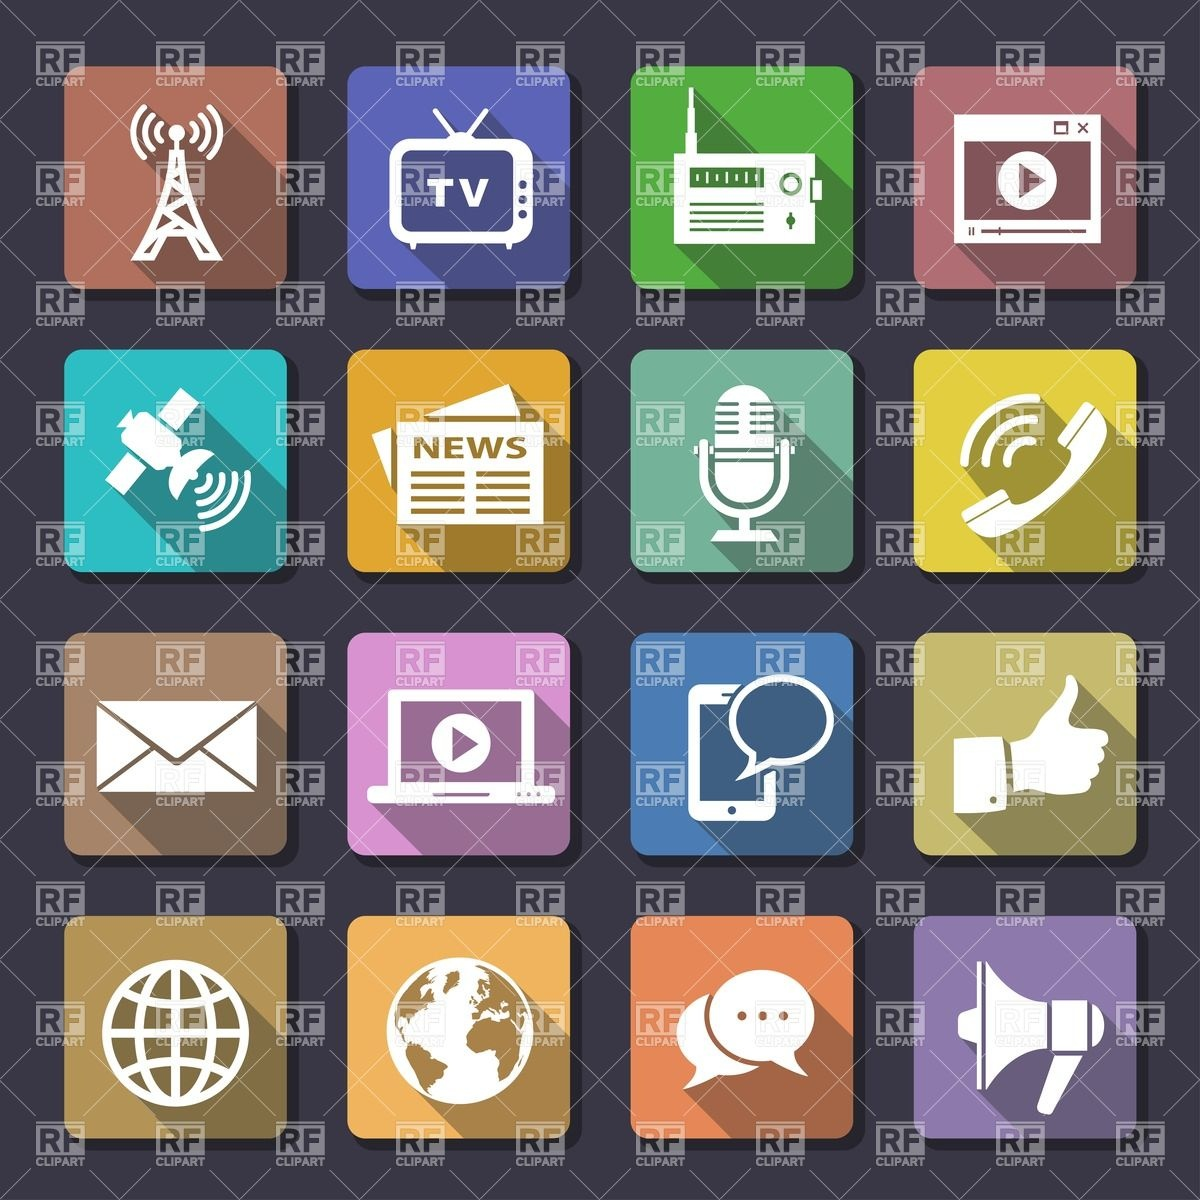 Mass media and telecommunication icons Vector Image #26899.